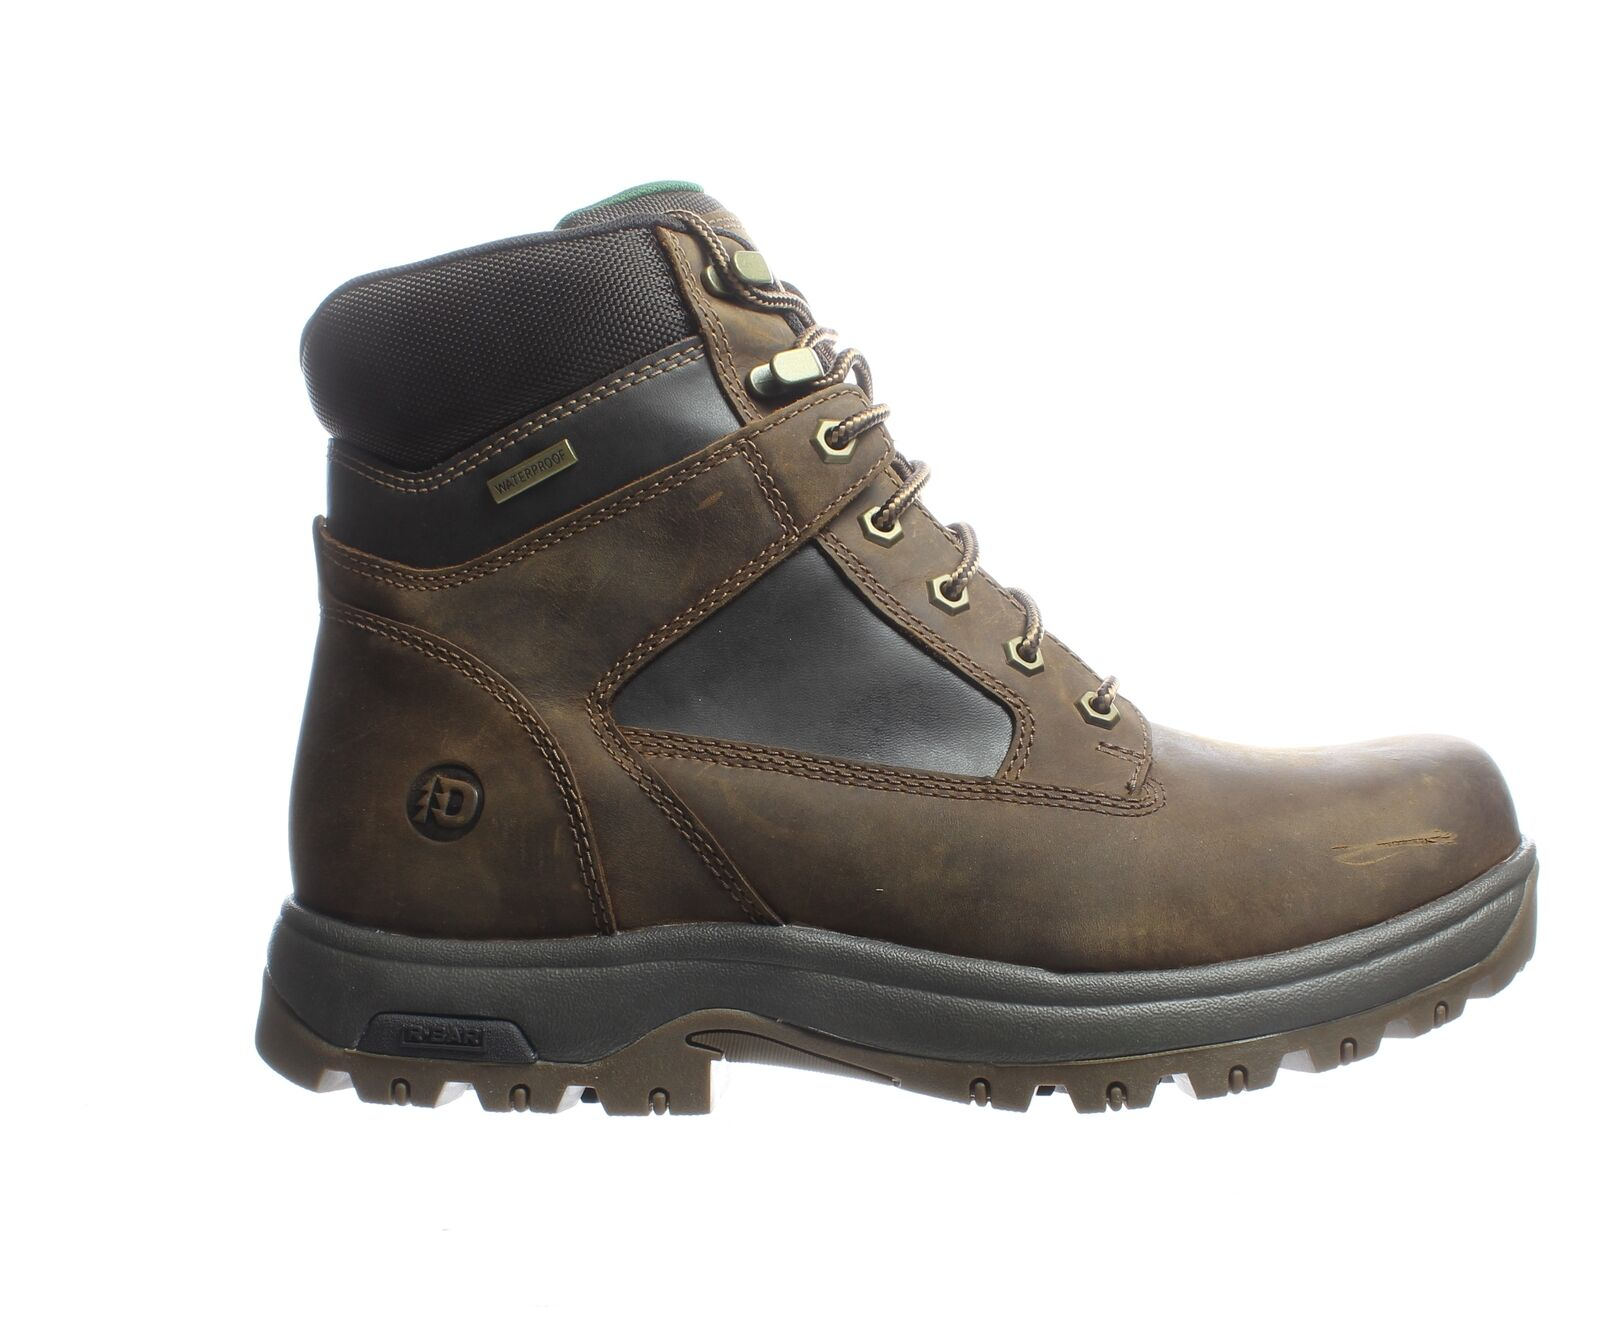 Dunham Mens 8000Works Brown Leather Work & Safety Boots Size 11 (6E) (1970571)